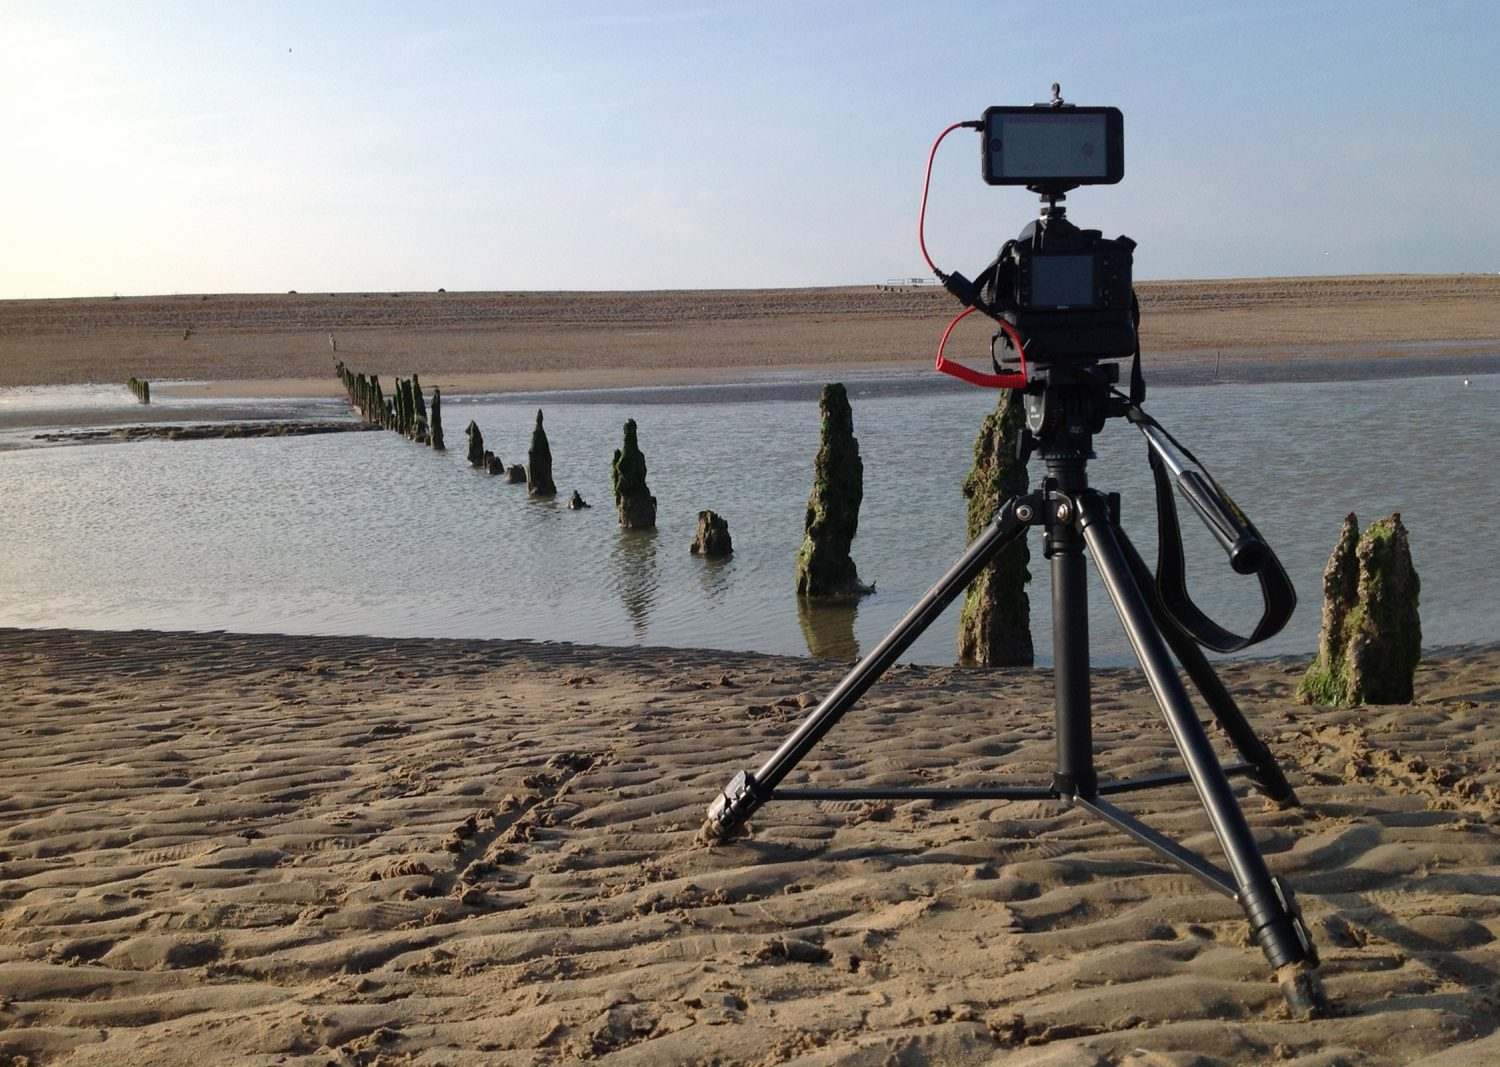 Camera on a Tripod with a beach view